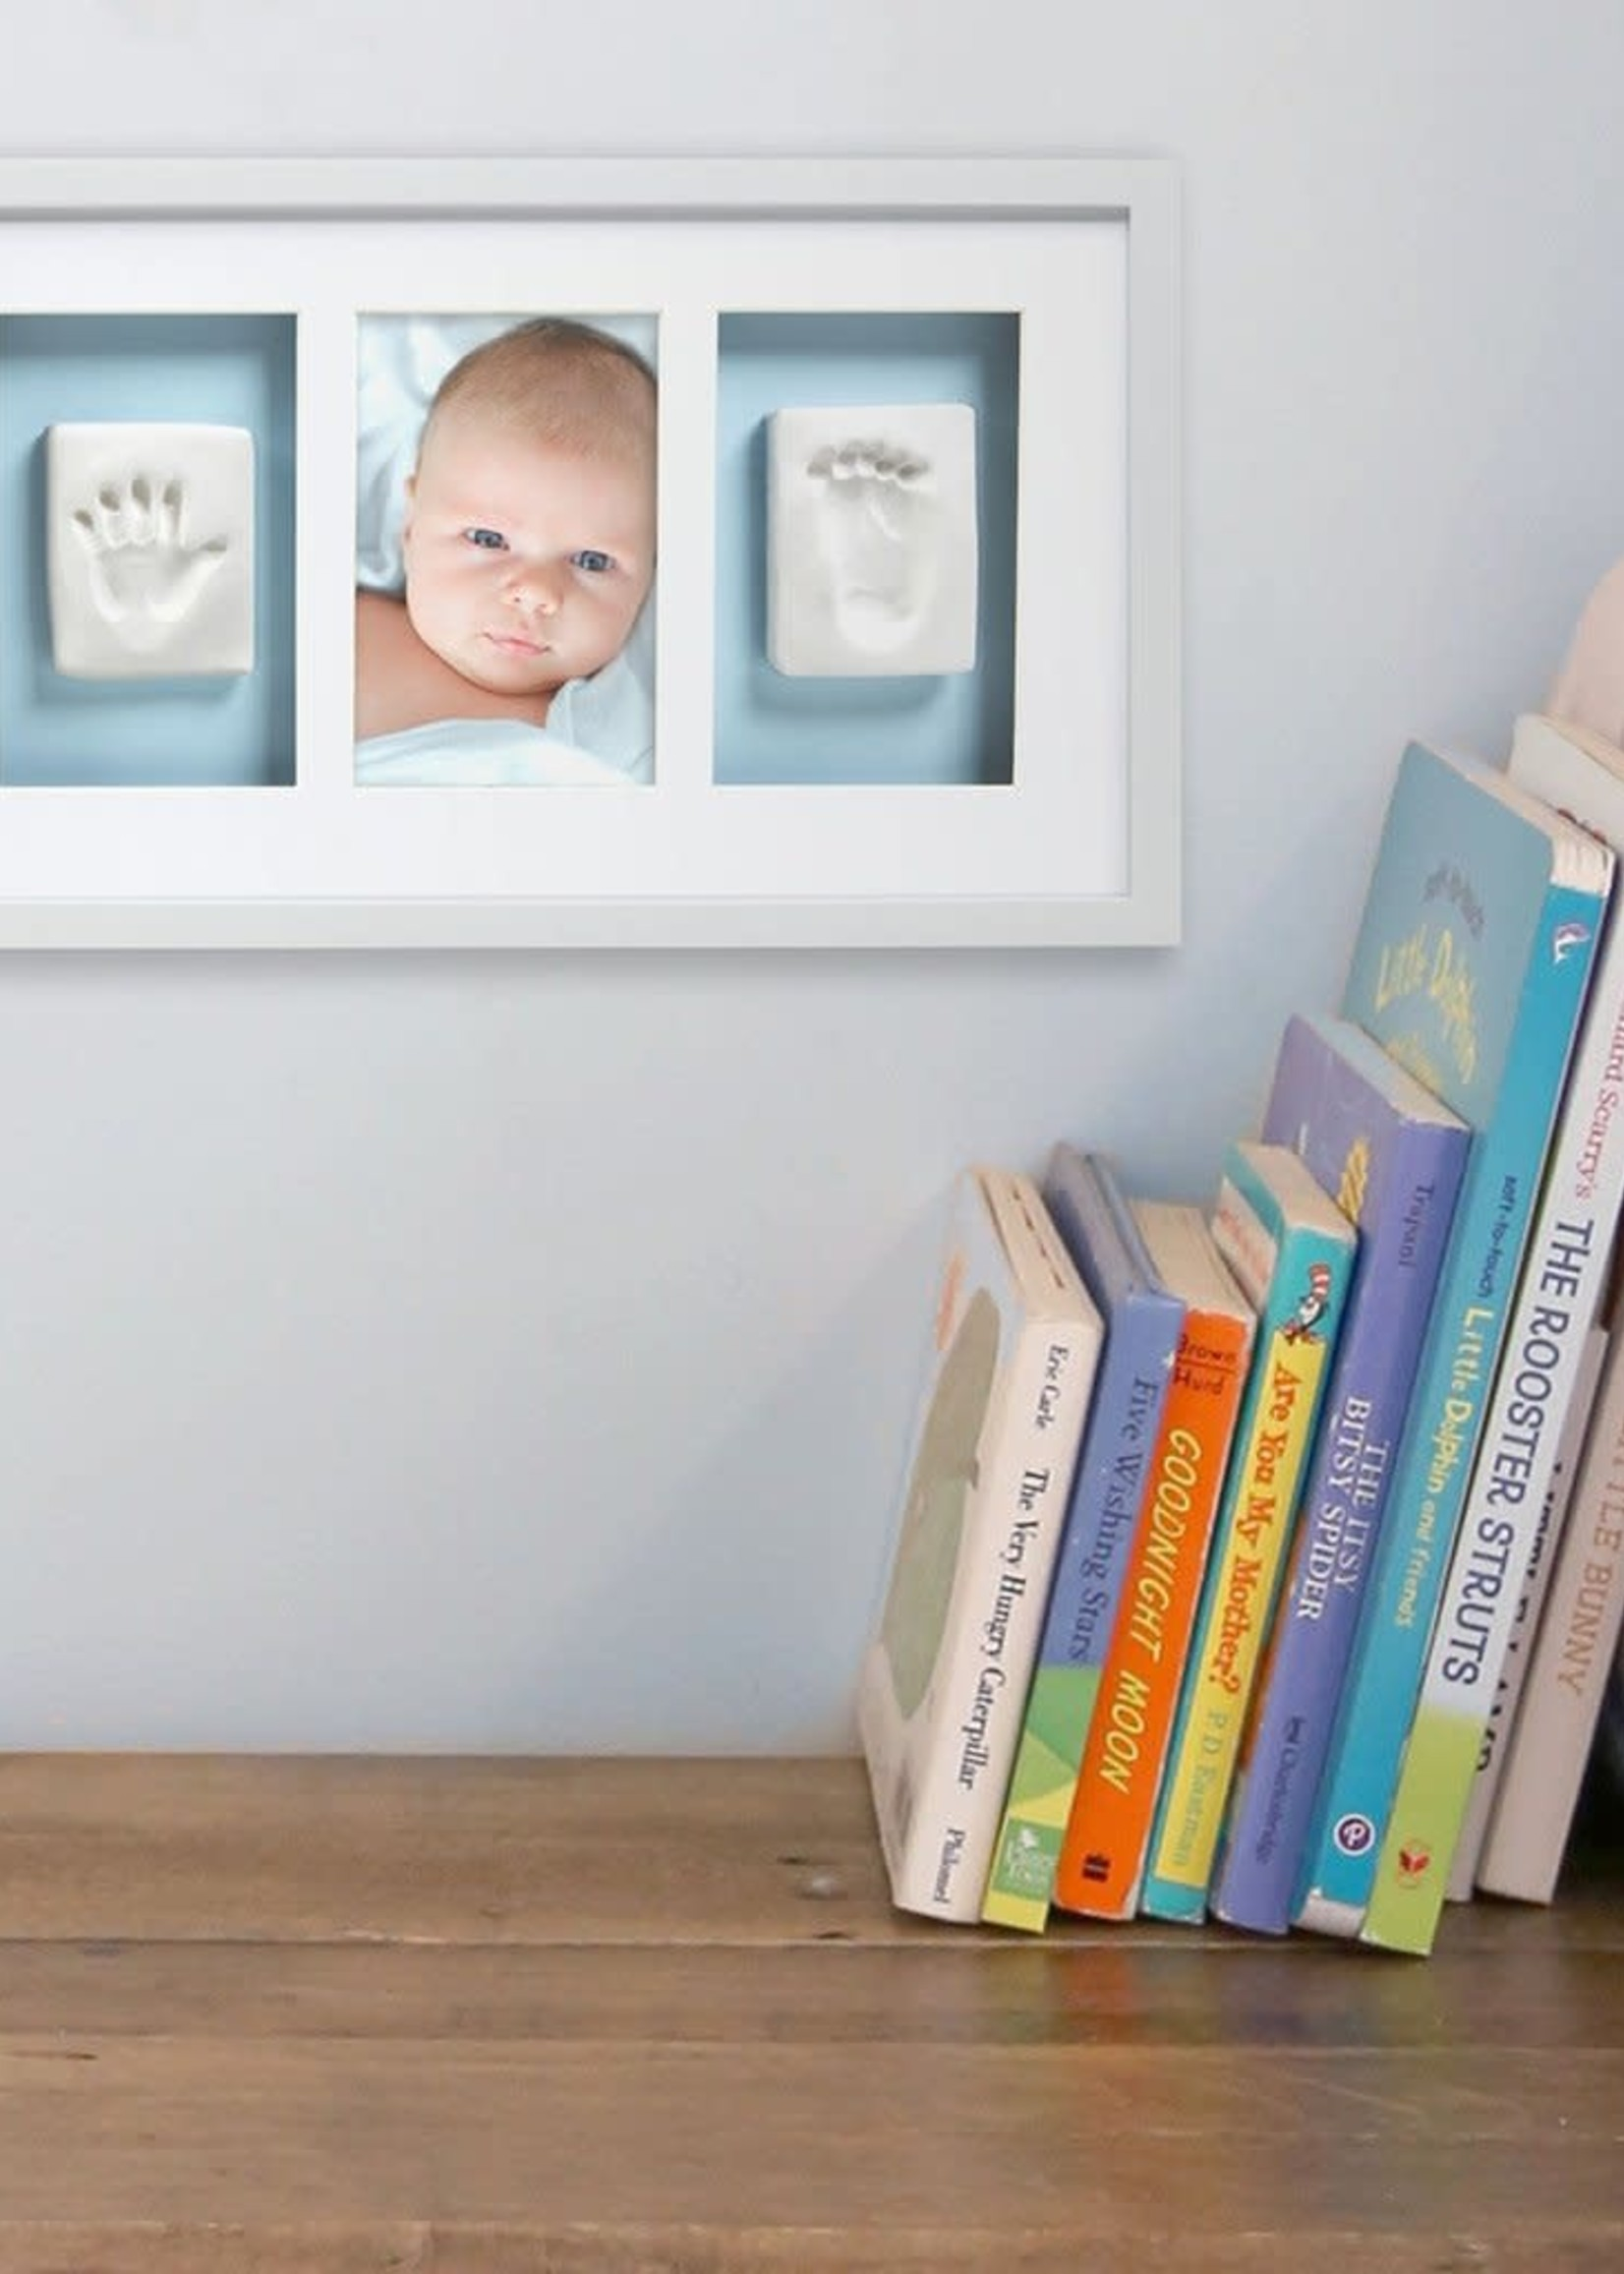 babyprints frame deluxe wall